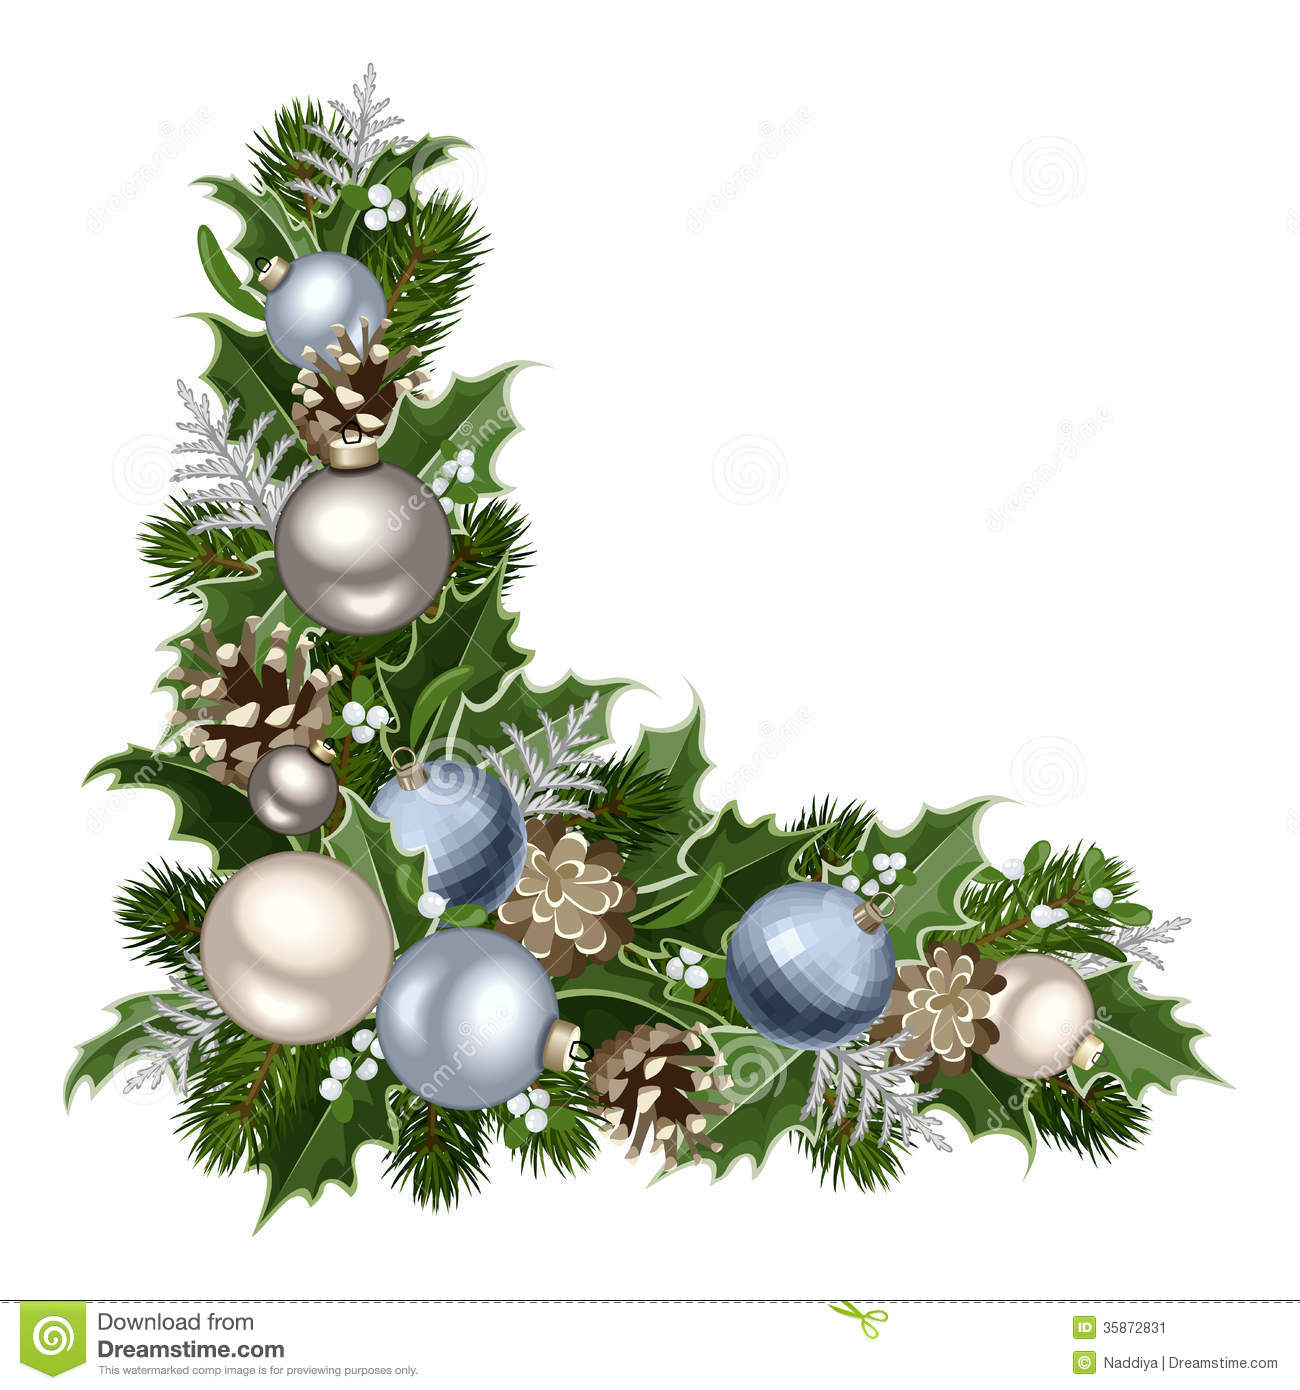 Holly christmas ornaments - Christmas Decorative Corner Stock Image